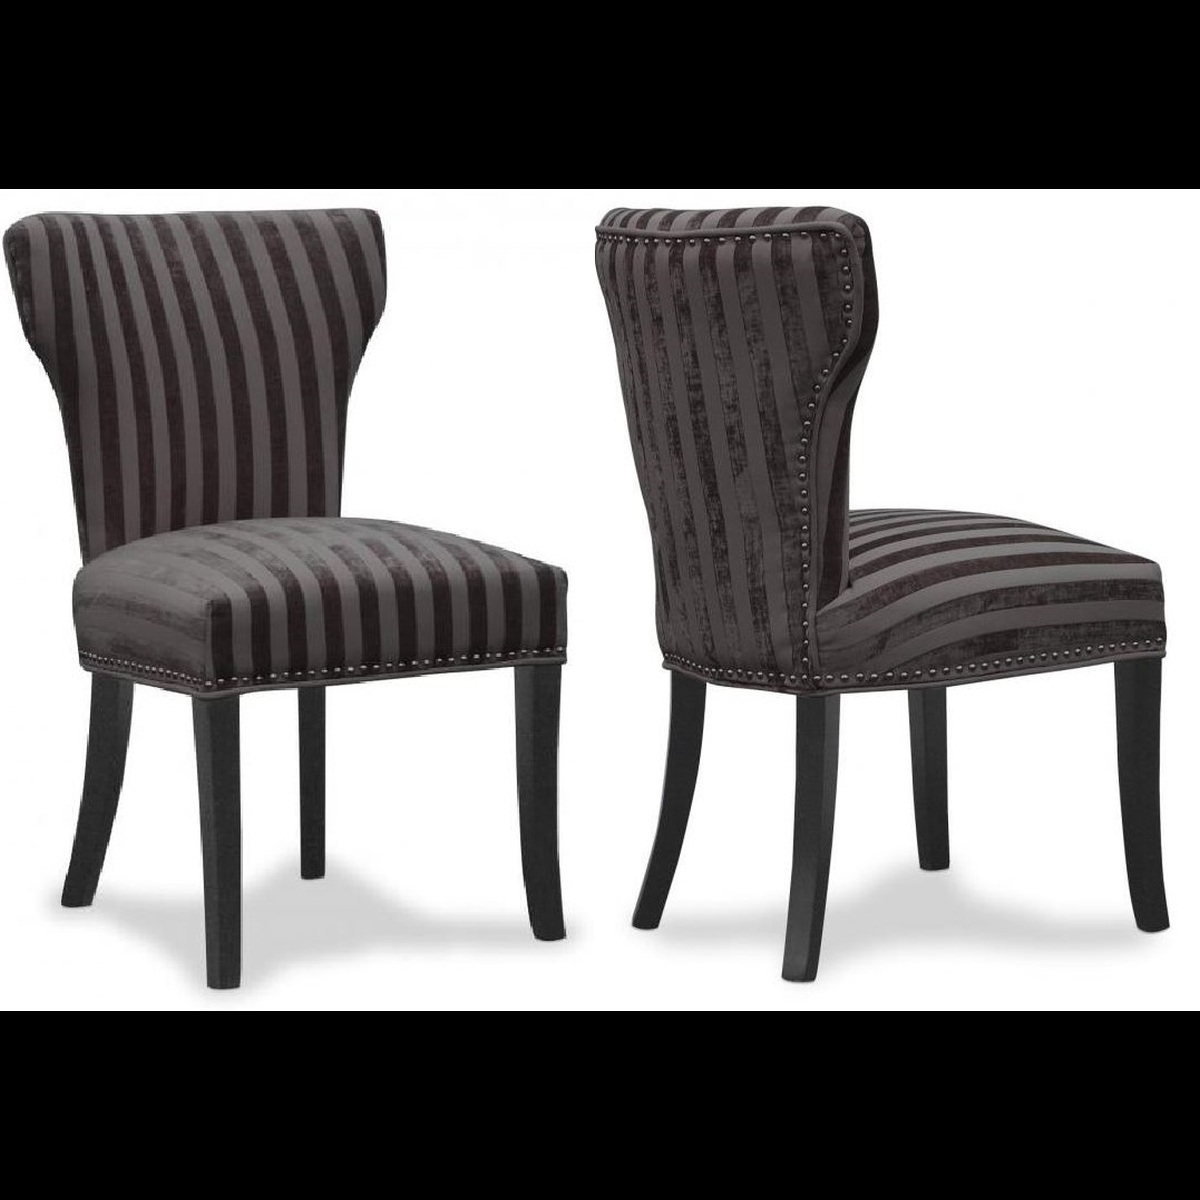 Sentinel Luxury Set Of 2 Wing Back Striped Dining Chairs Black Grey Charcoal